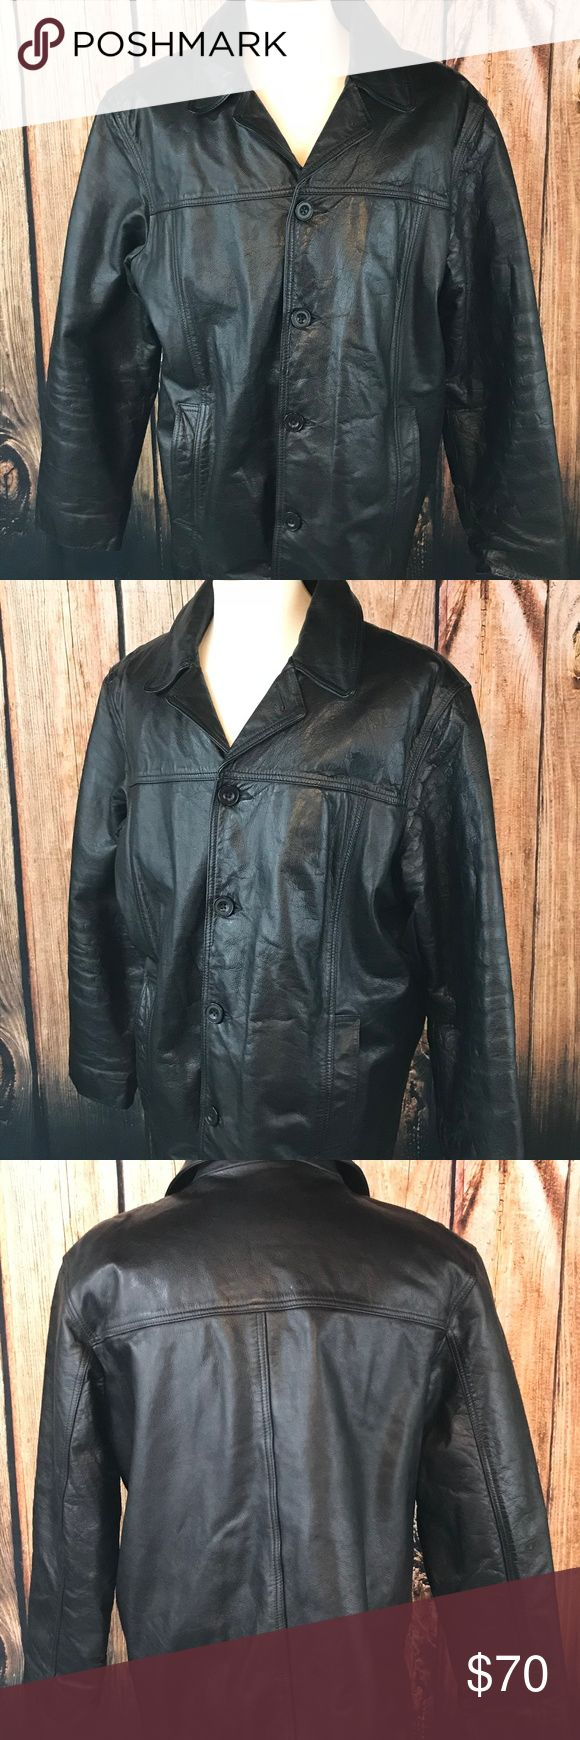 J Crew Mens Leather Jacket Size Large Wool Liner J Crew Mens Leather Jacket Size Large Wool Liner Black Button Front Side Pockets Size: Large  Material: 100% Leather; Body Liner-Wool Blend  Item is pre-owned.  Distressing from use while motorcycle riding. Needs to be cleaned.     Measurements Laying Flat:  Armpit to Armpit-23 inches  Length-30 inches        CL 20 J. Crew Jackets & Coats Bomber & Varsity